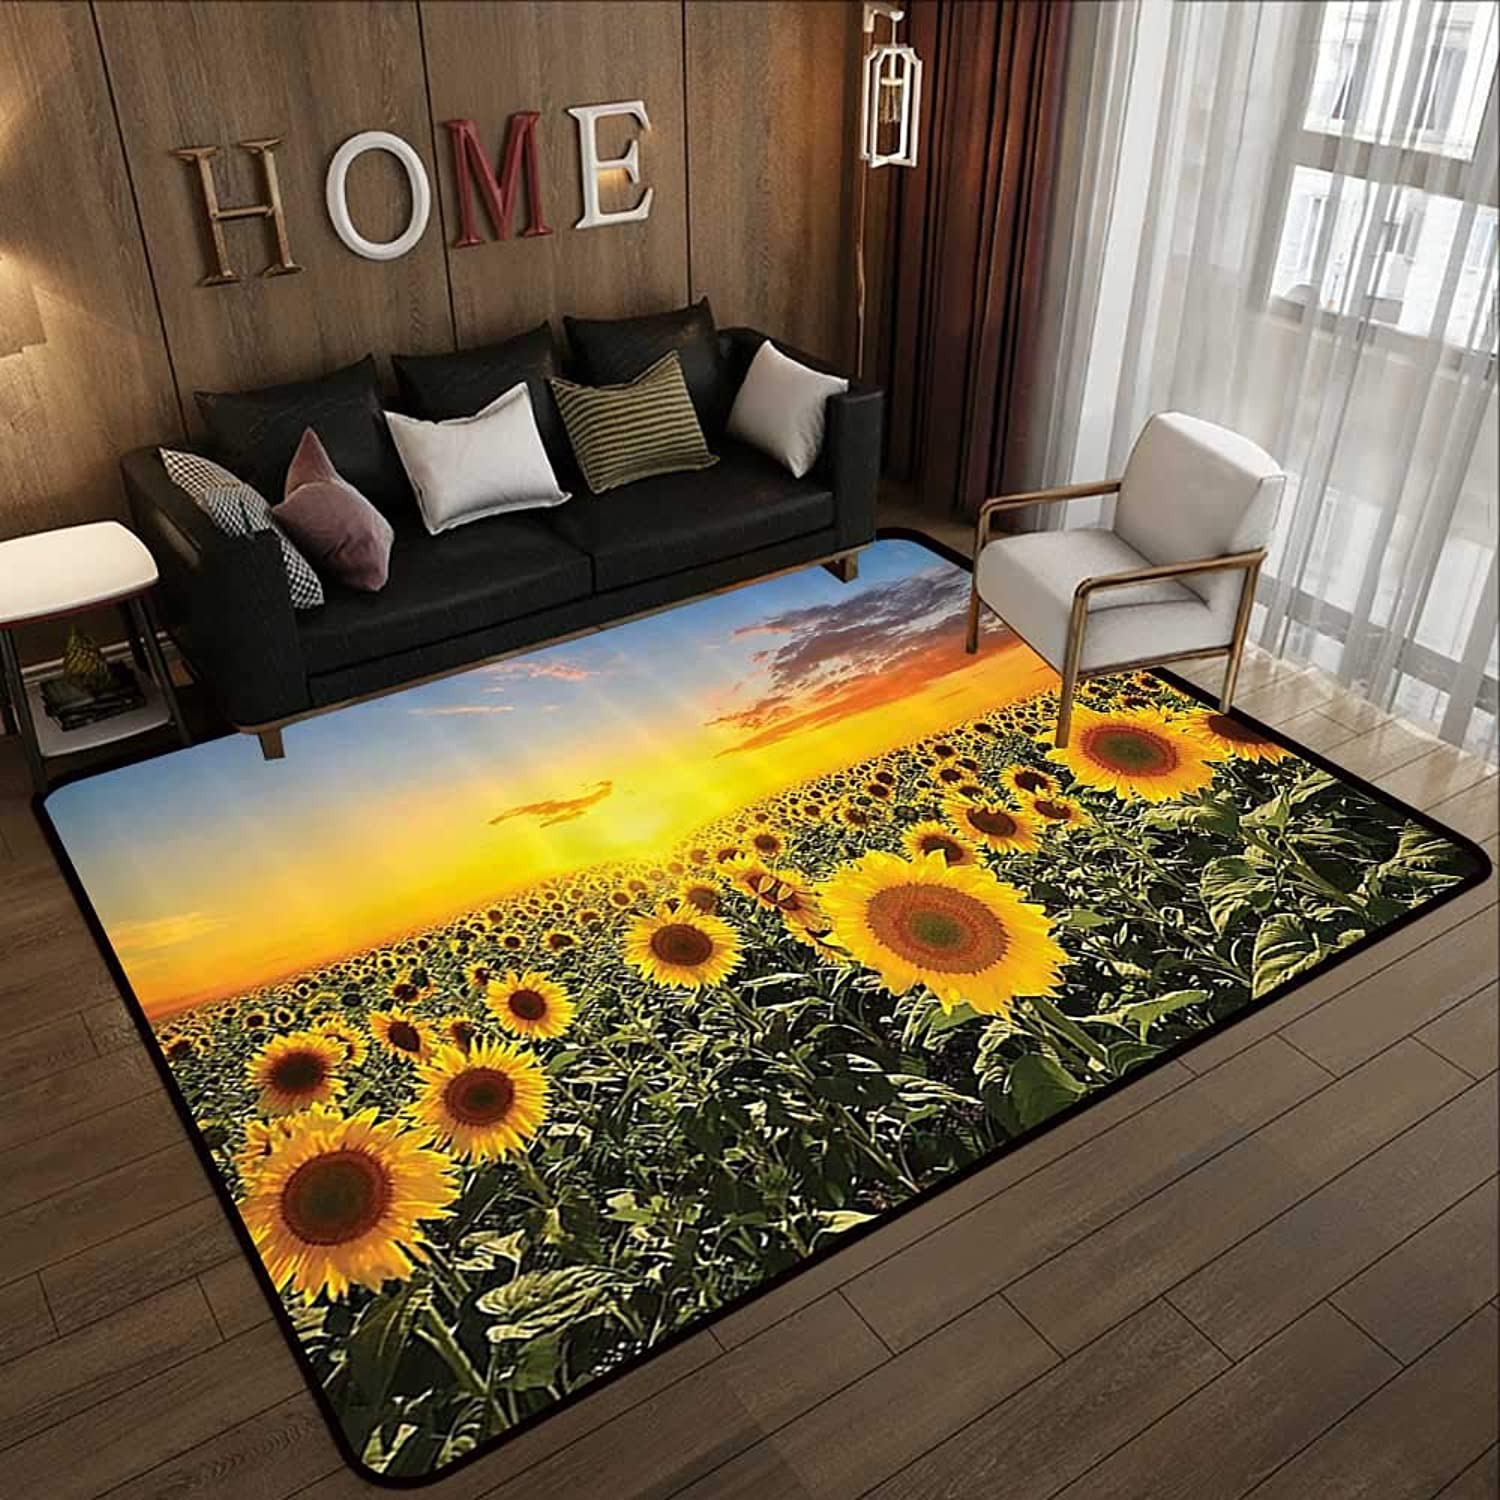 Kids Rugs,Country Farm Garden Decorations,Sunset Over colorful Sunflower Plants Field at Cloudy Evening,bluee Brown Yellow Green 47 x 71  Slip-Resistant Washable Entrance Doormat